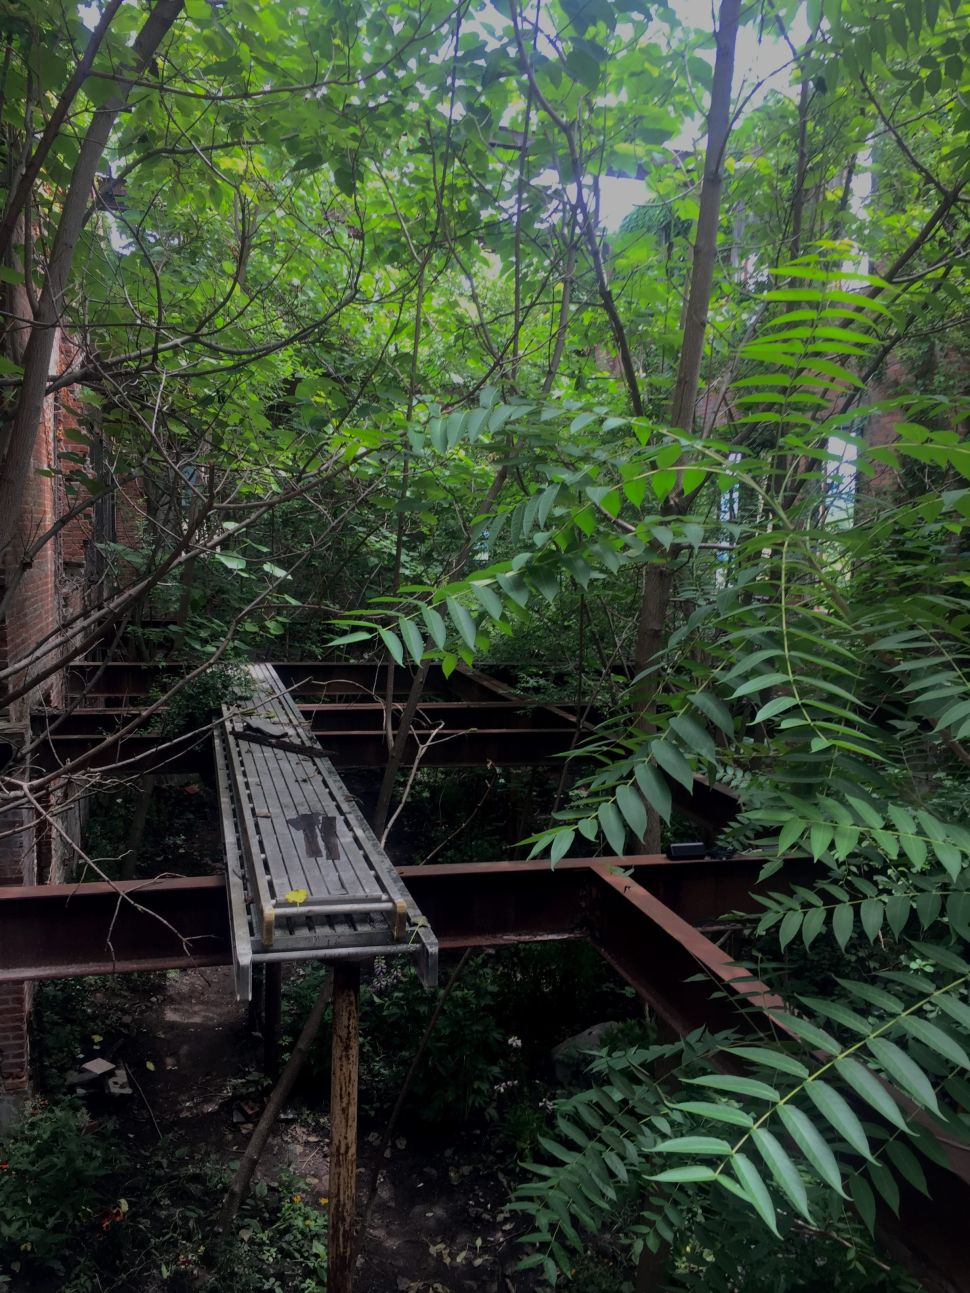 Visiting Martin Roth's Experimental Plant Concert Where Ruins Meet Nature